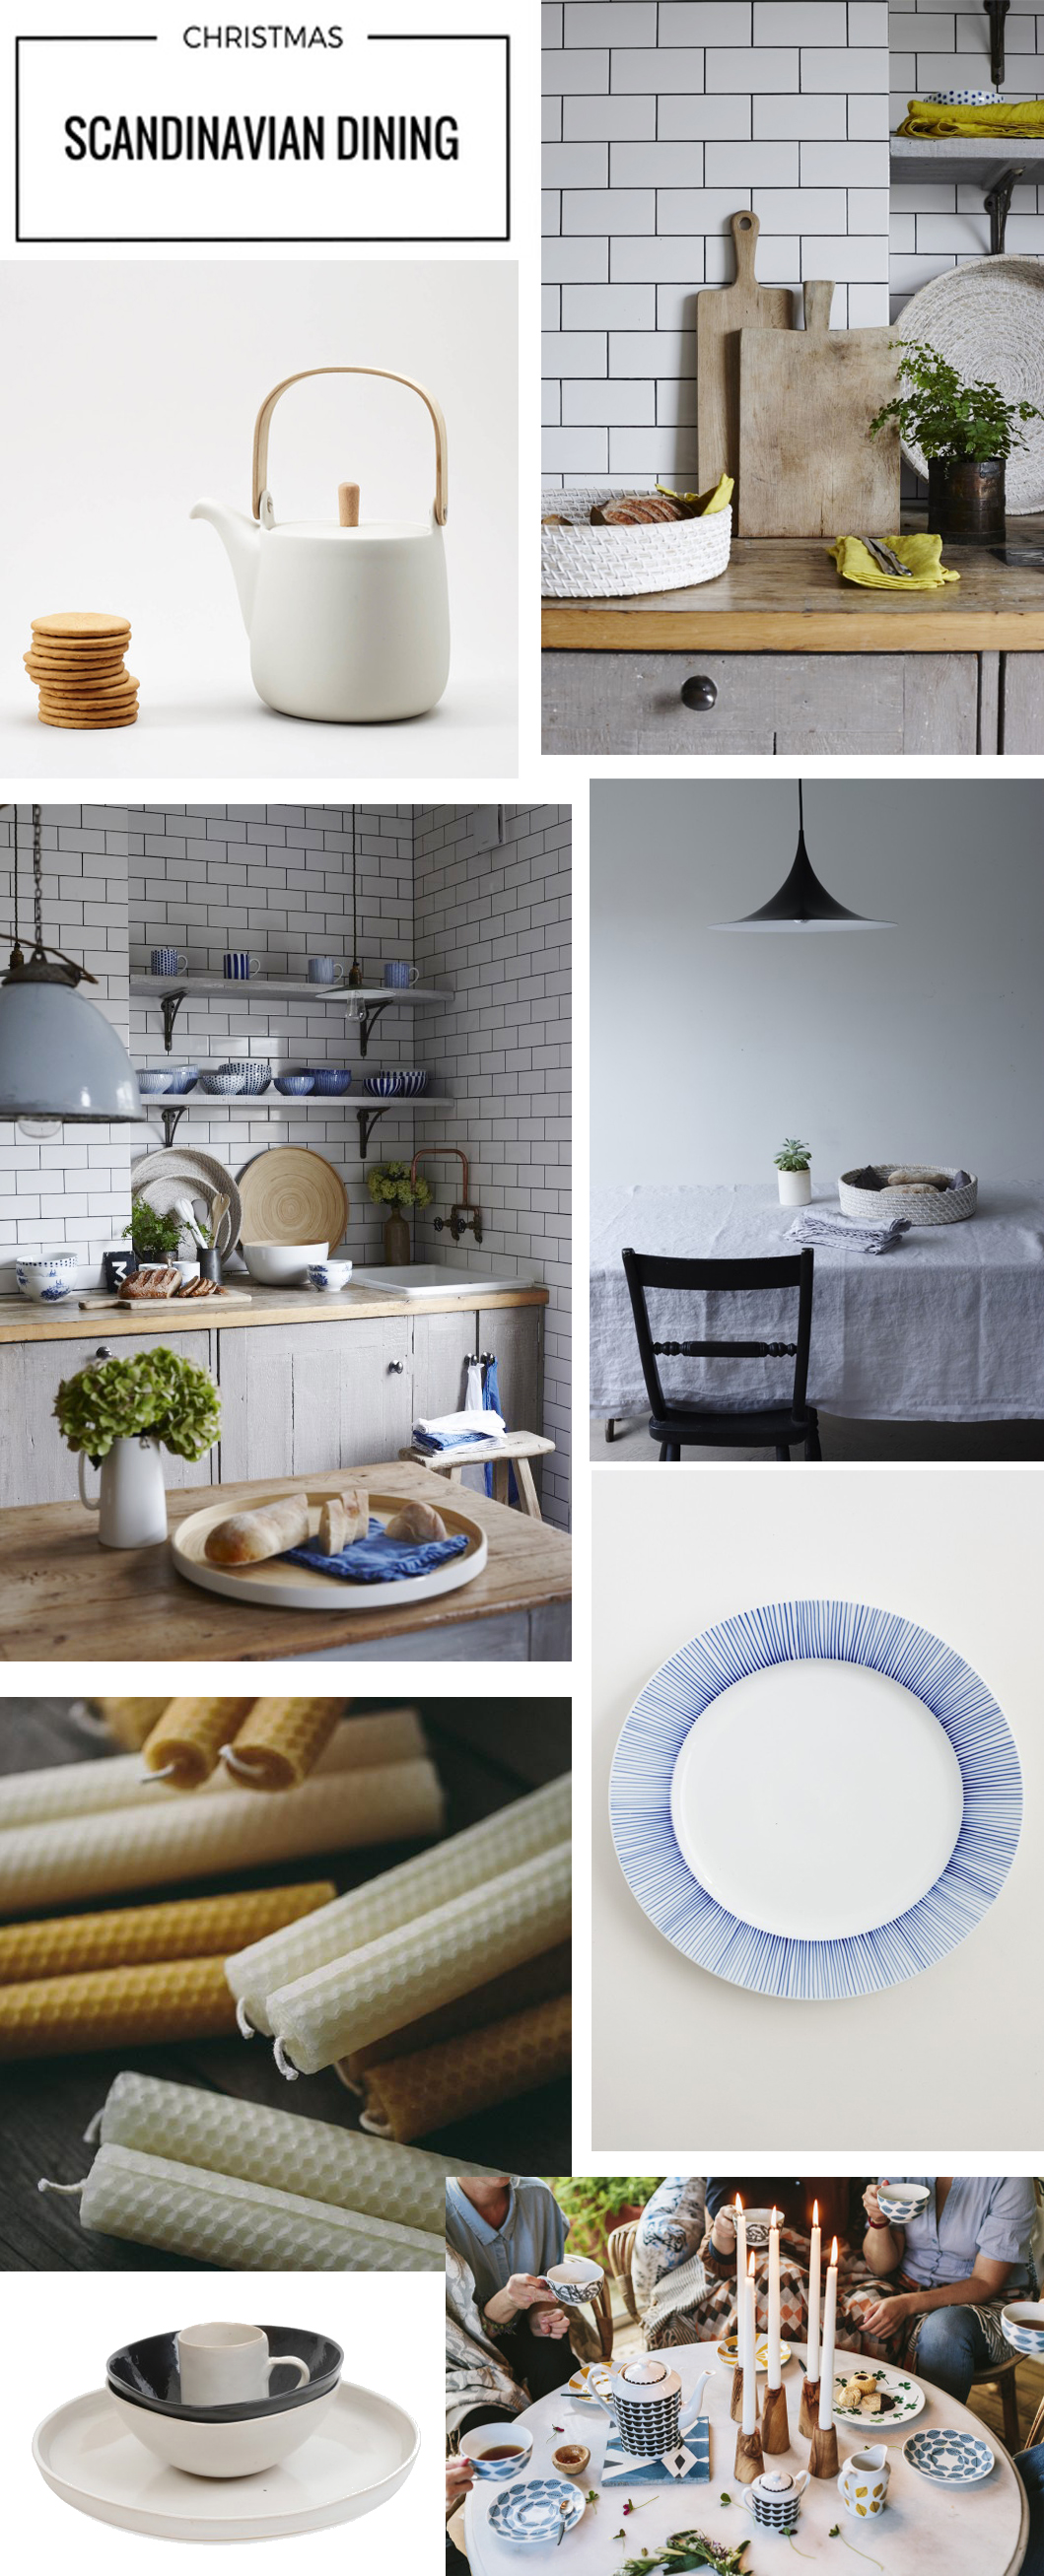 Scandinavian Christmas dining | ALSO Home | Scandinavian tableware | Apartment Apothecary